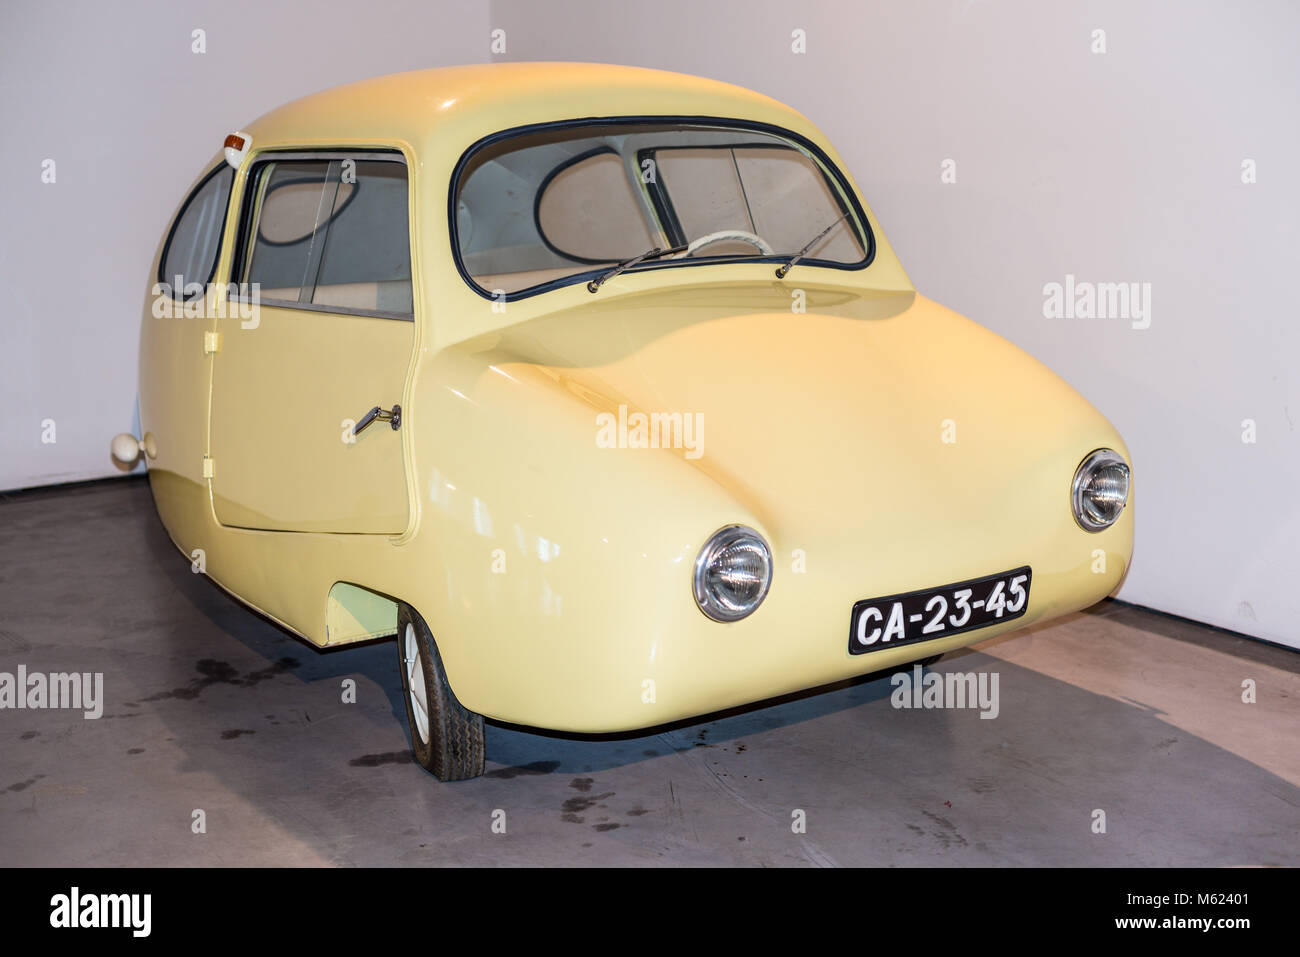 Malaga, Spain - December 7, 2016: The egg Fuldamobil car (model 1955) Germany displayed at Malaga Automobile and - Stock Image